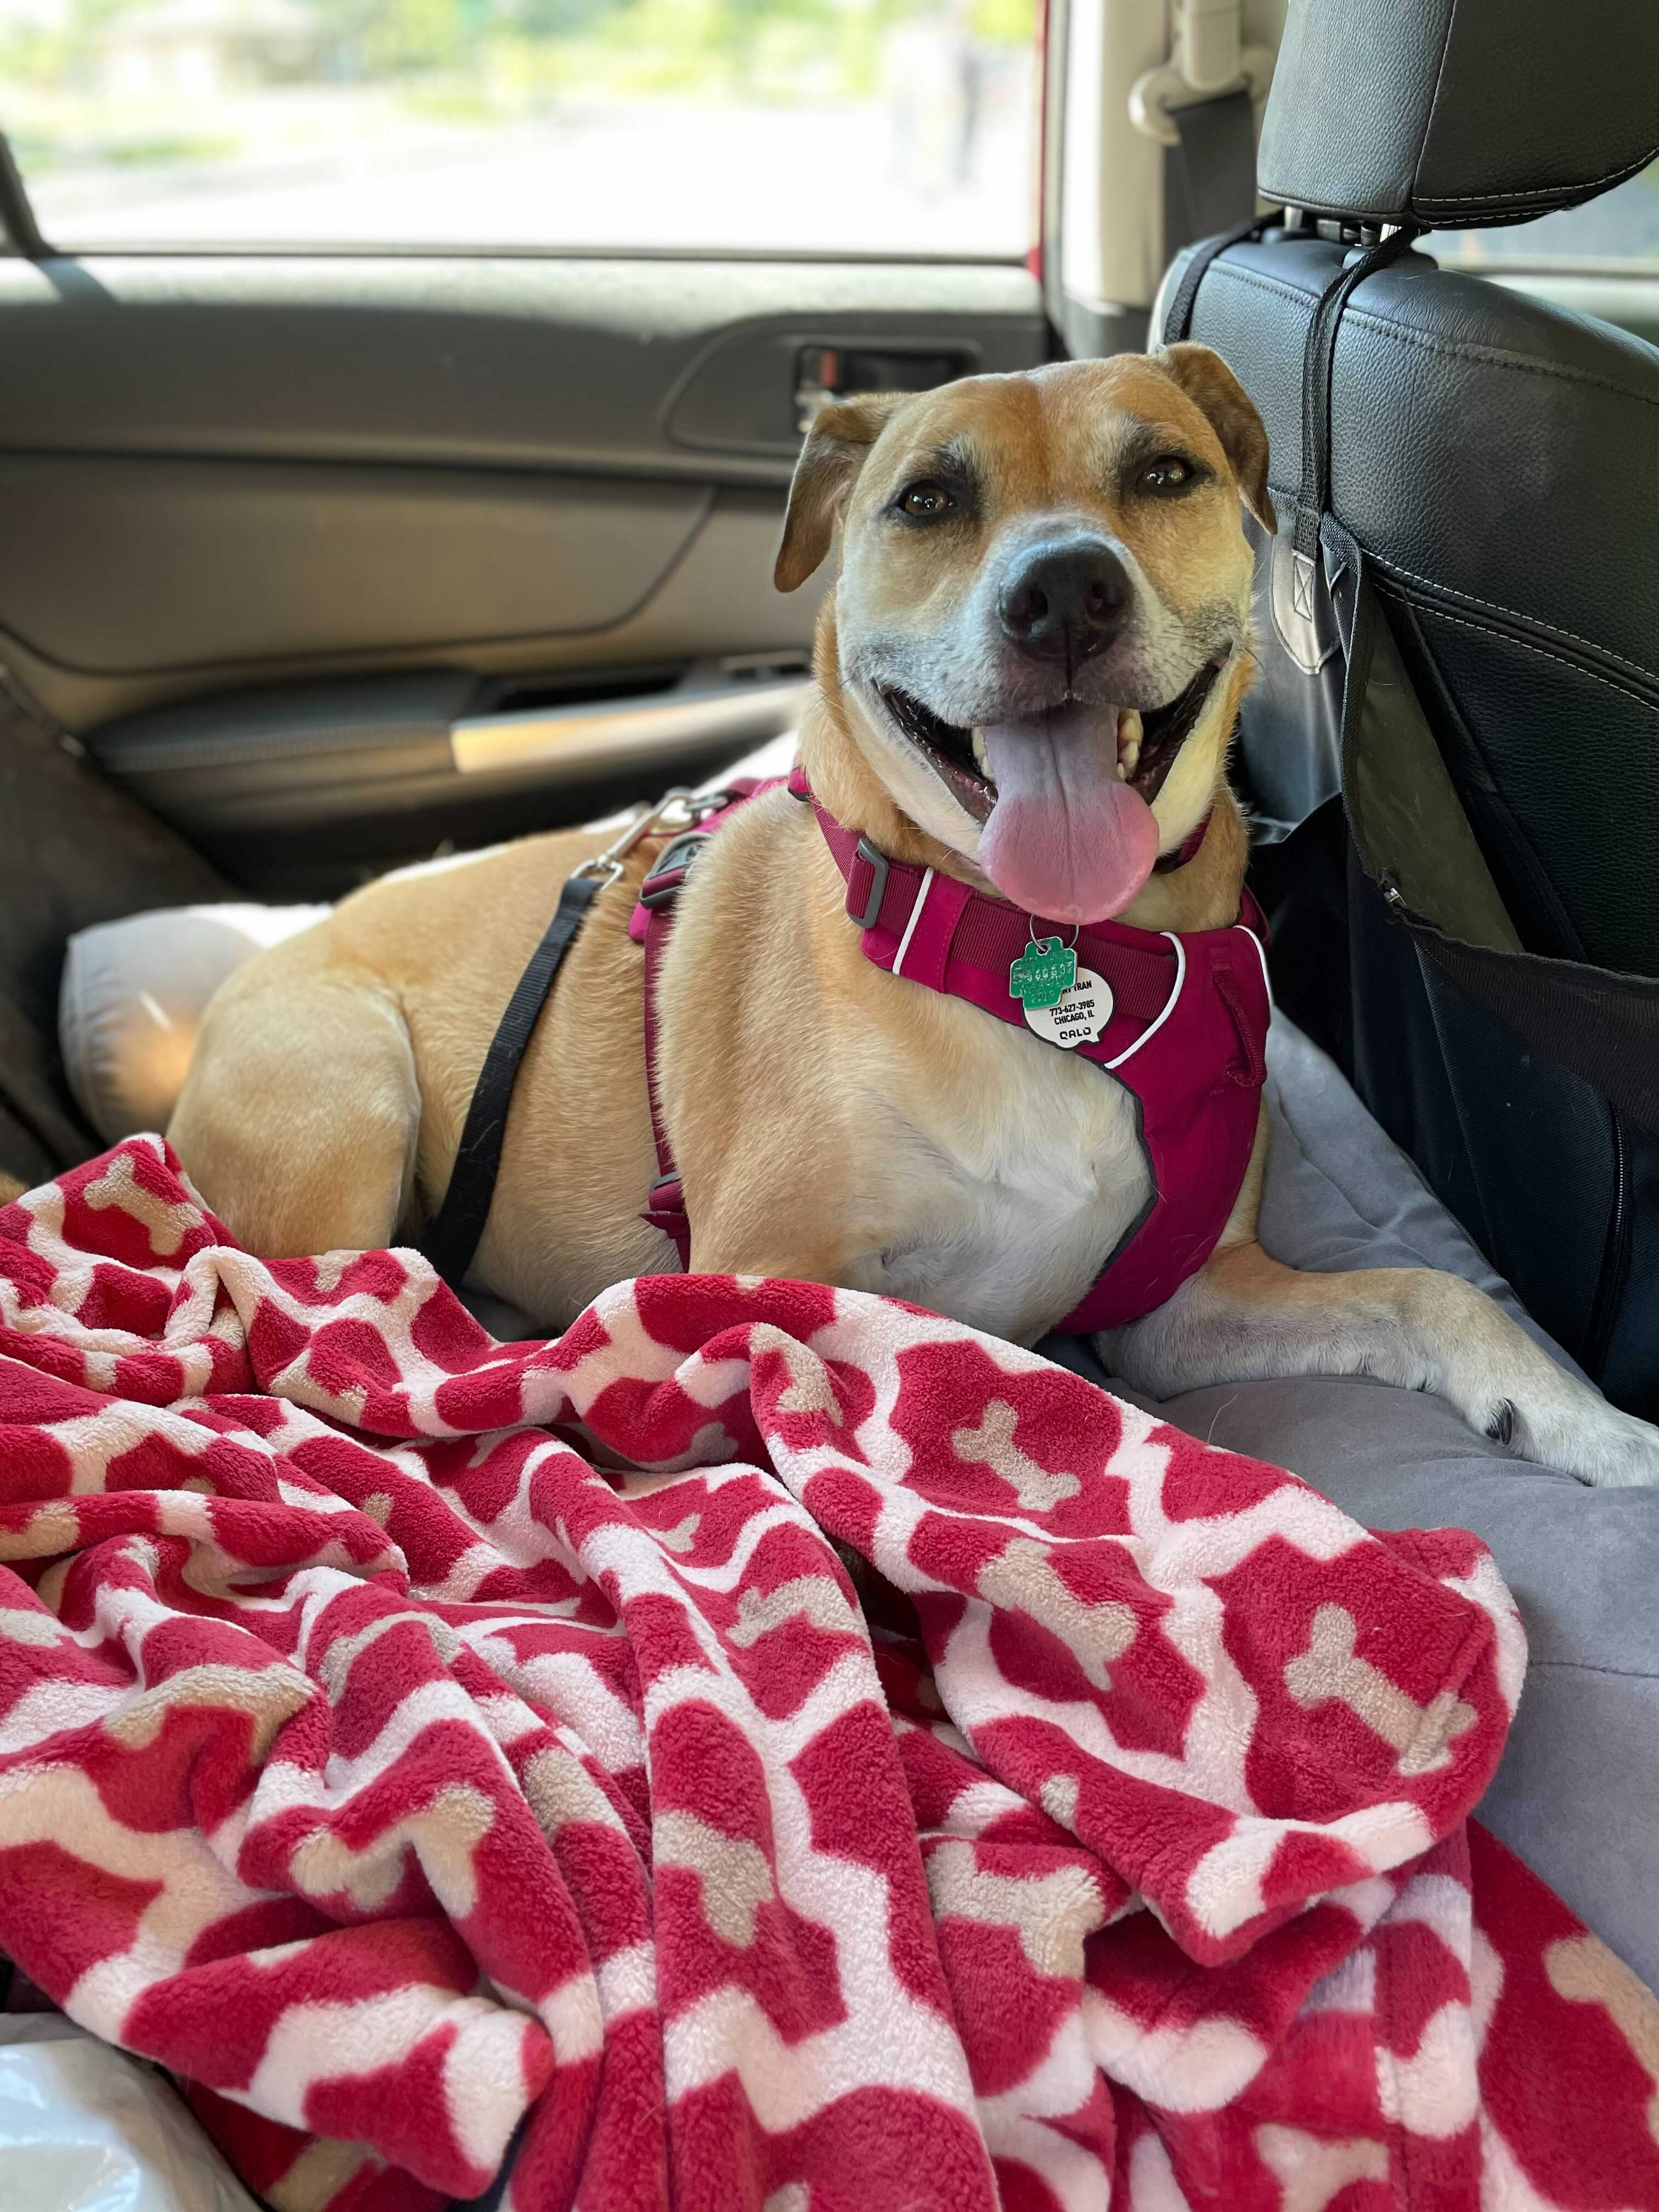 """Enter to win a 30"""" x 40"""" Tall Tails Comfort Blanket for Your Dog. Valued at $33 each. 10 Winners! Giveaway Image"""